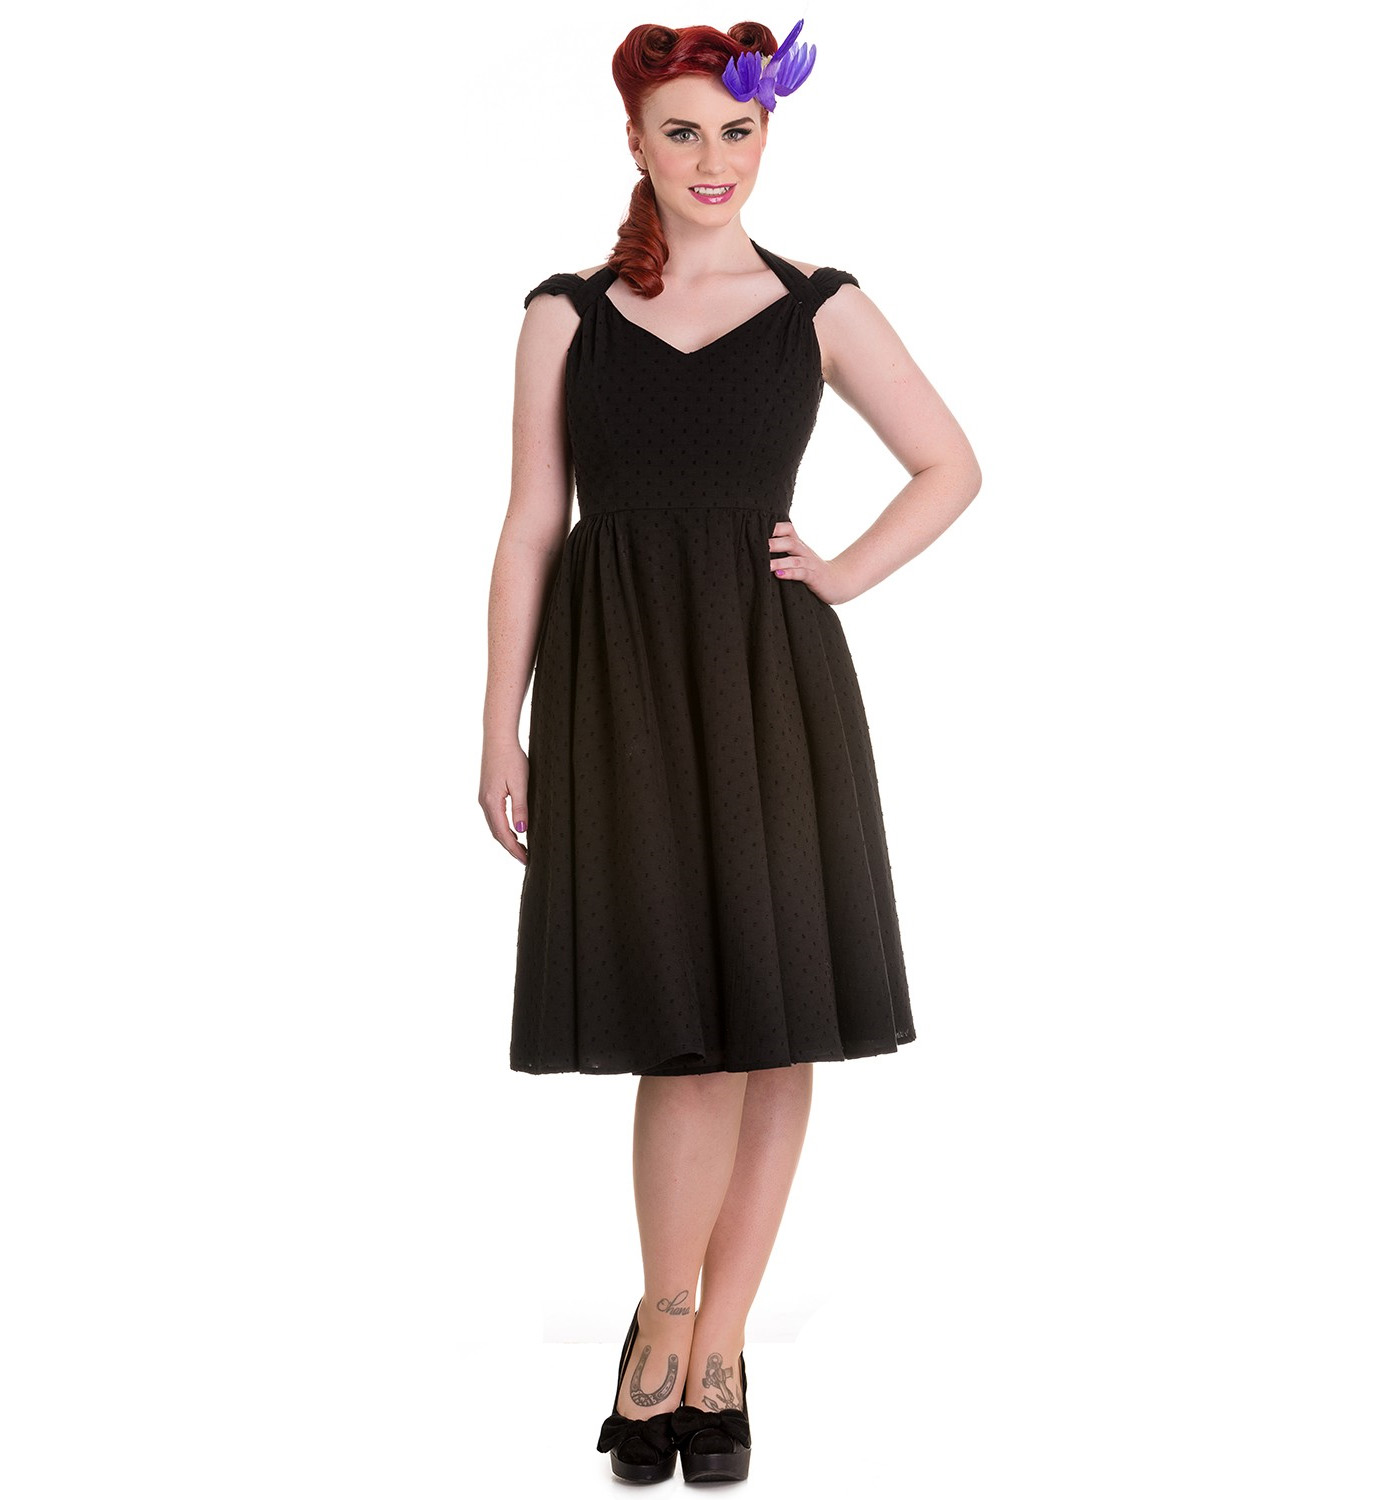 Hell-Bunny-Pin-Up-Summer-50s-Dress-Vintage-Rockabilly-EVELINE-Black-All-Sizes thumbnail 3